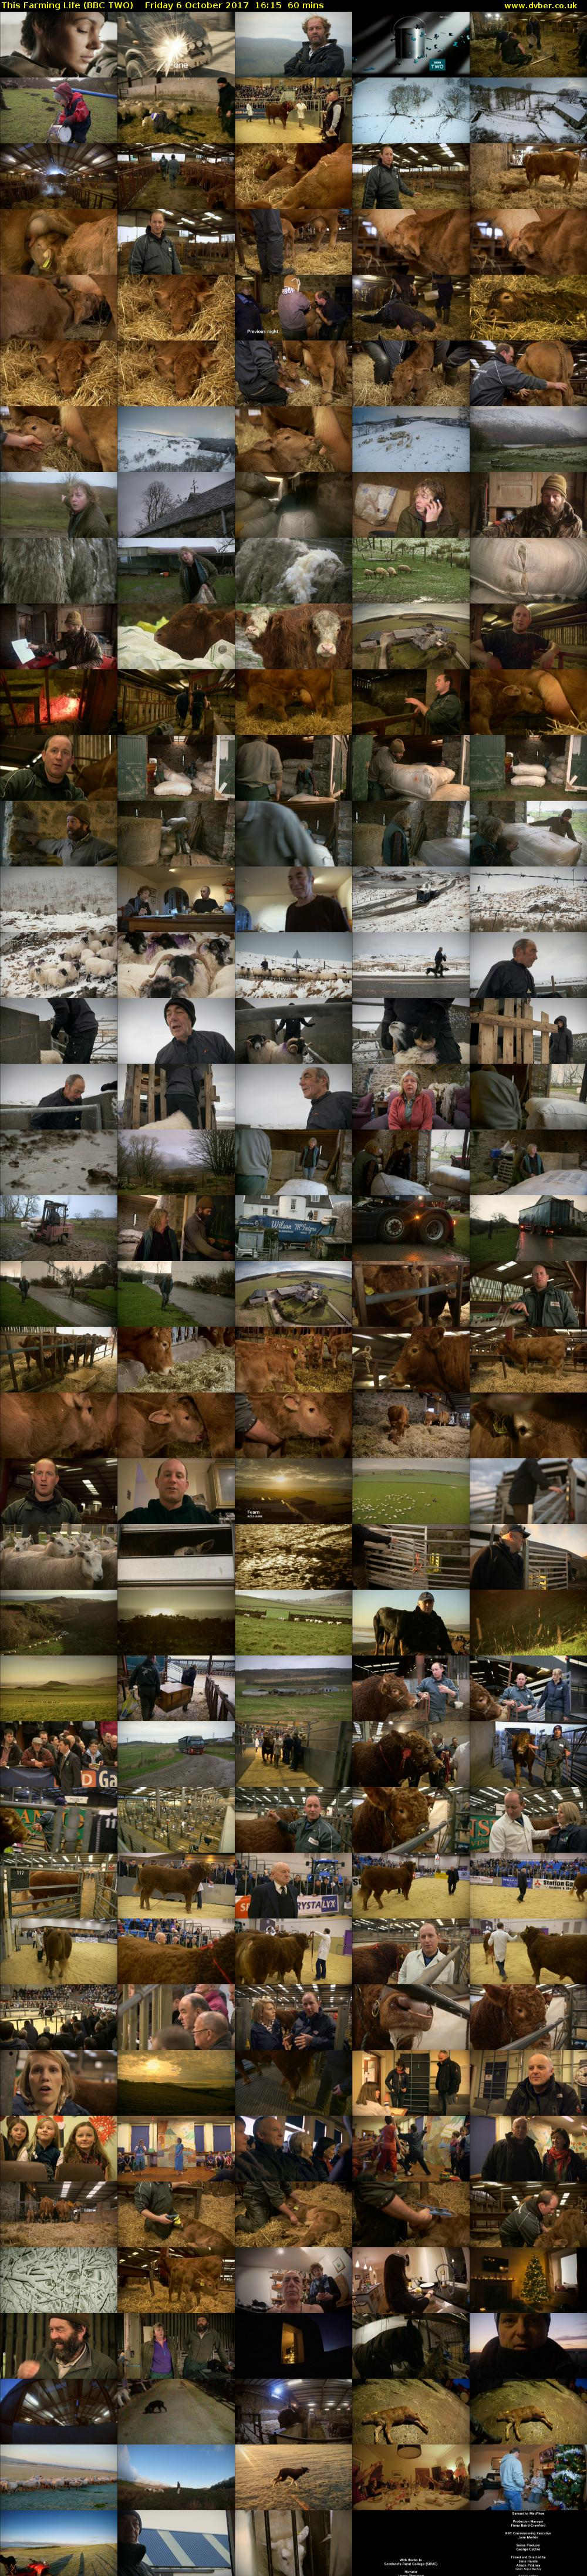 This Farming Life (BBC TWO) Friday 6 October 2017 16:15 - 17:15